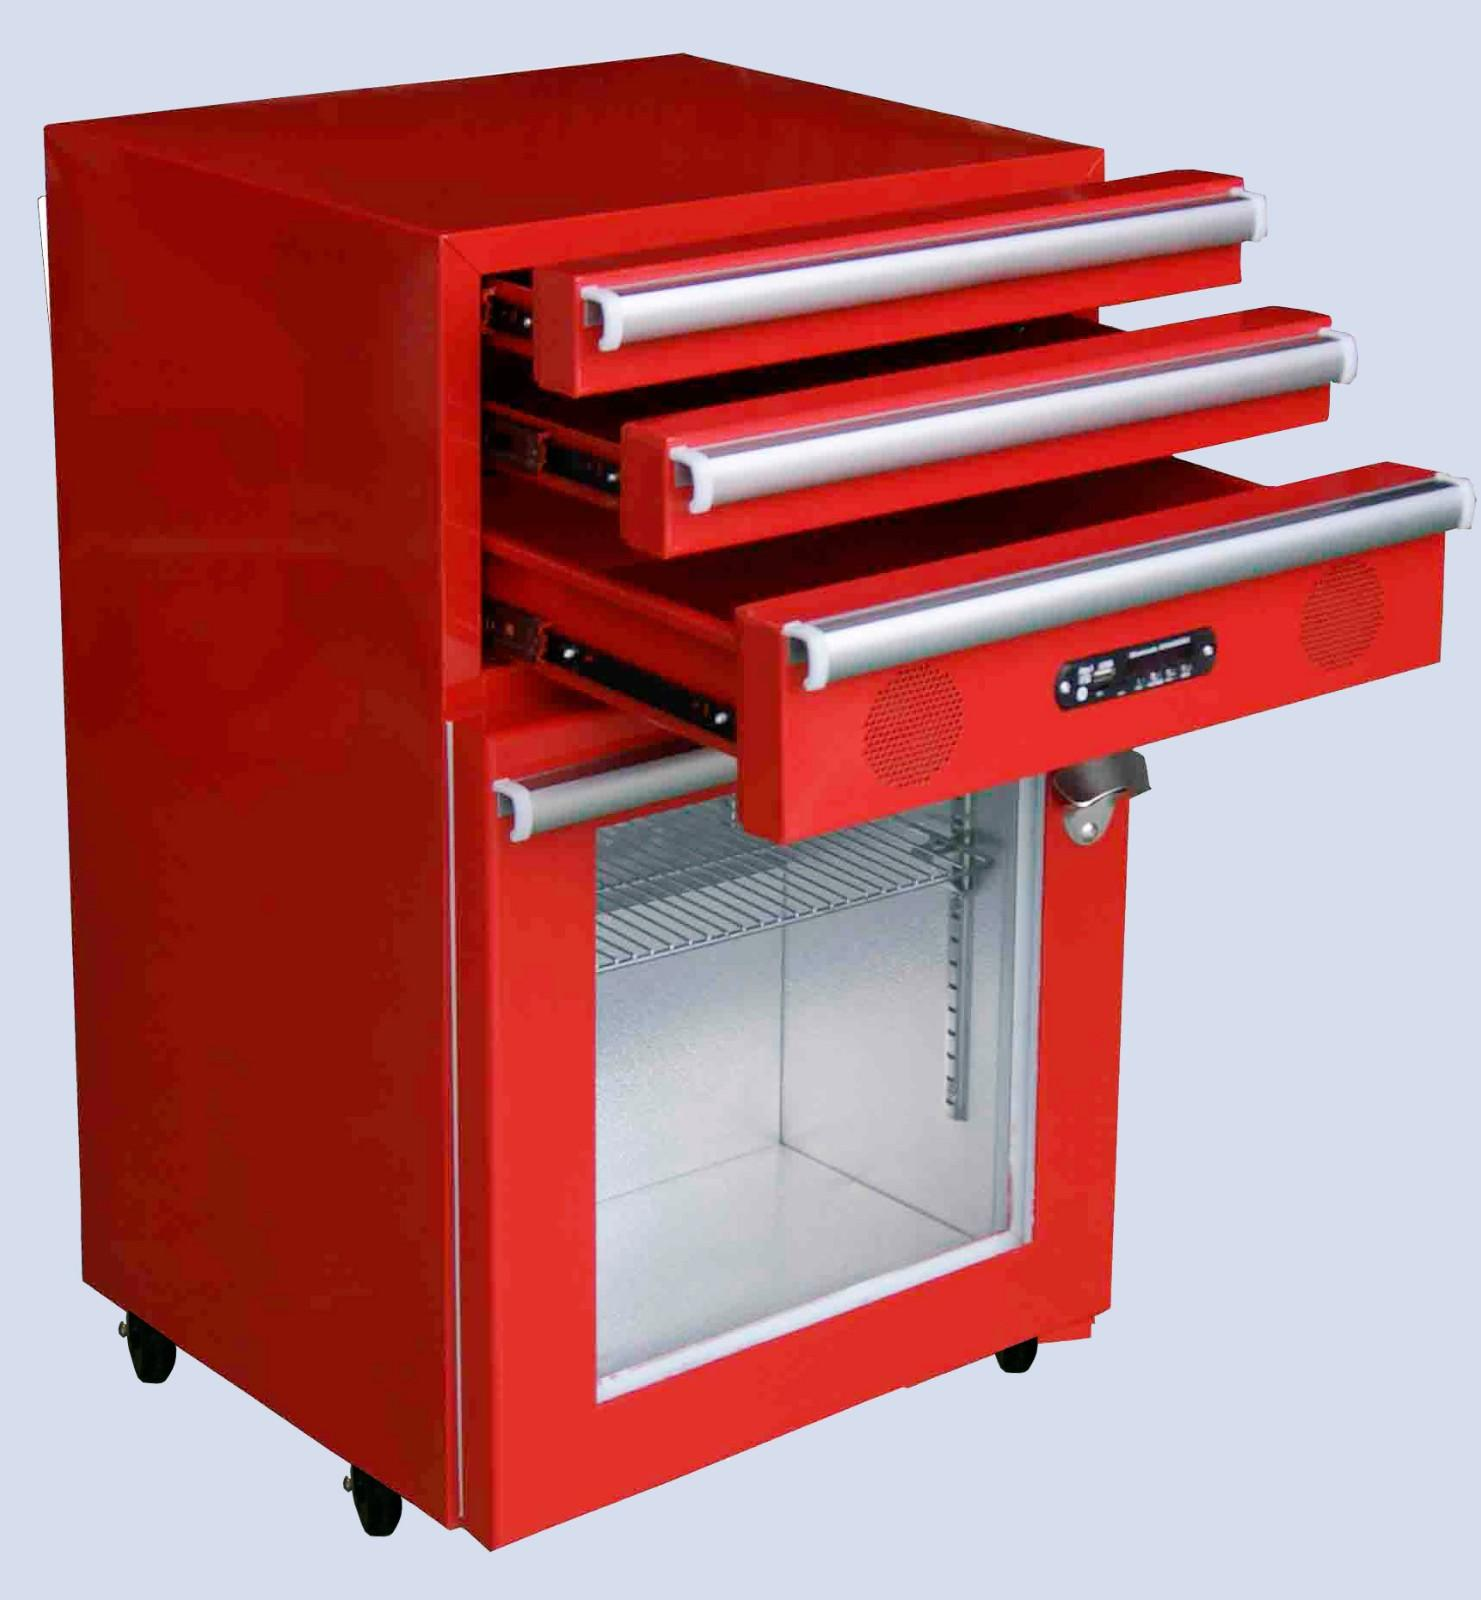 efficient tool box refrigerator drawerstoolbox for bar-1